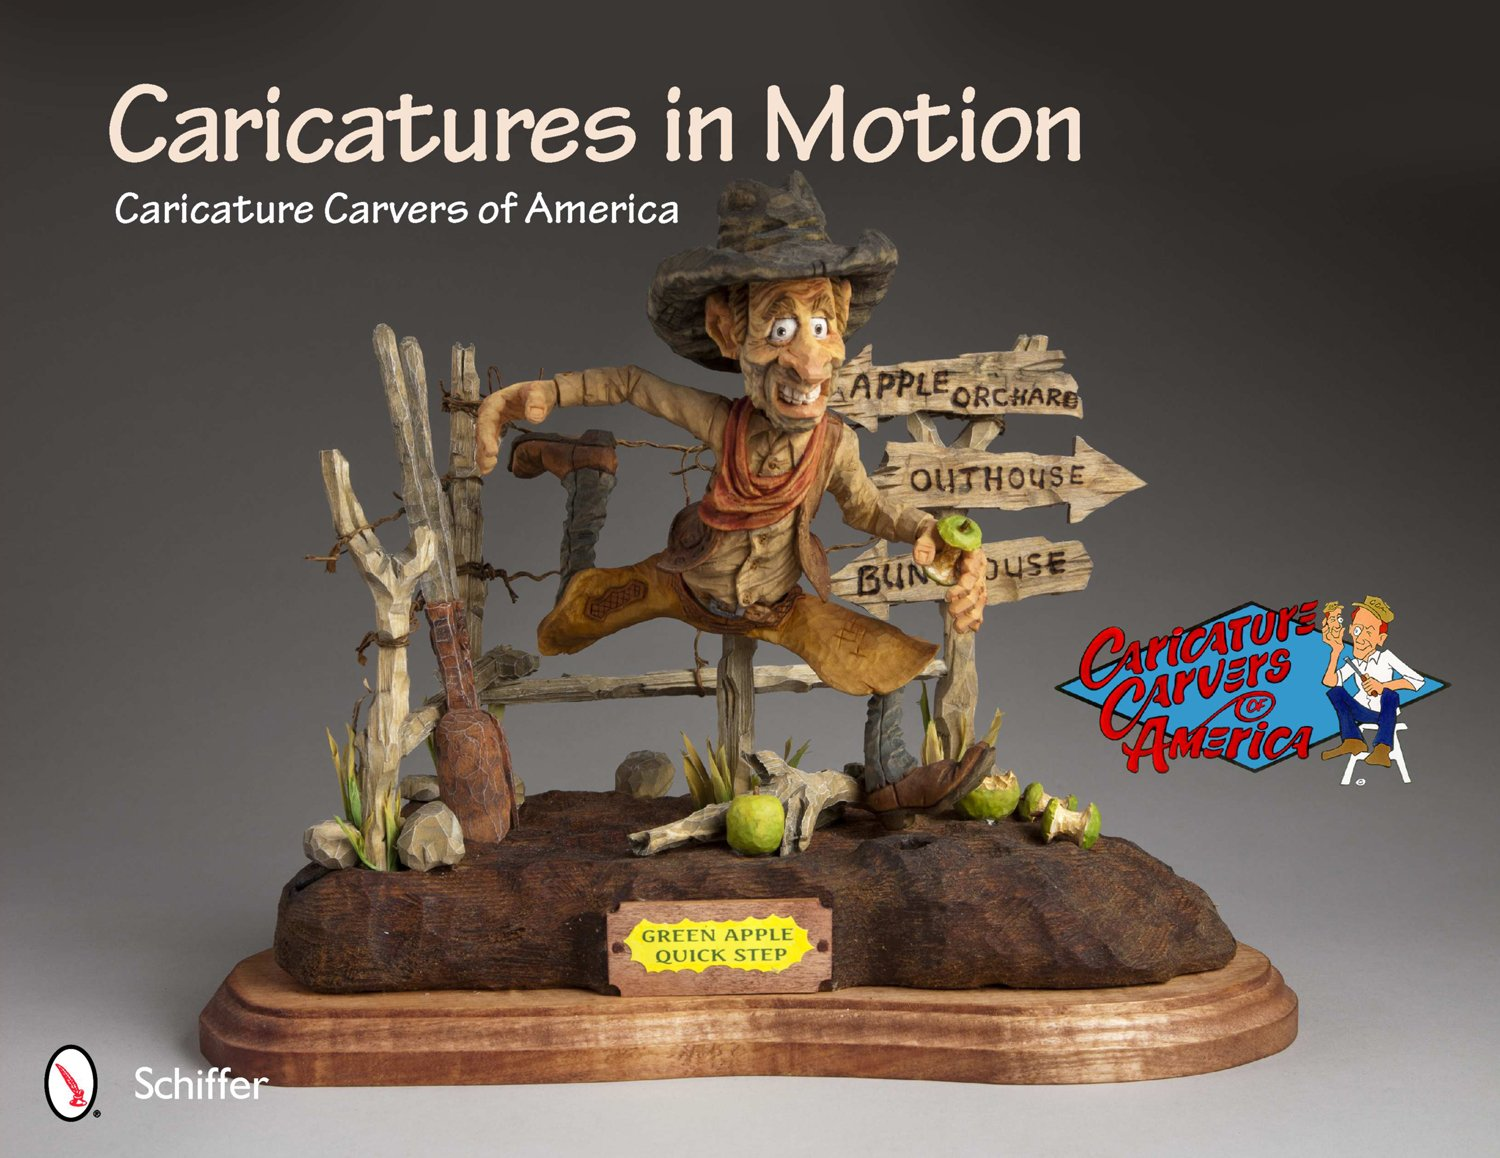 Best carving design contest caricature category winners kuiper